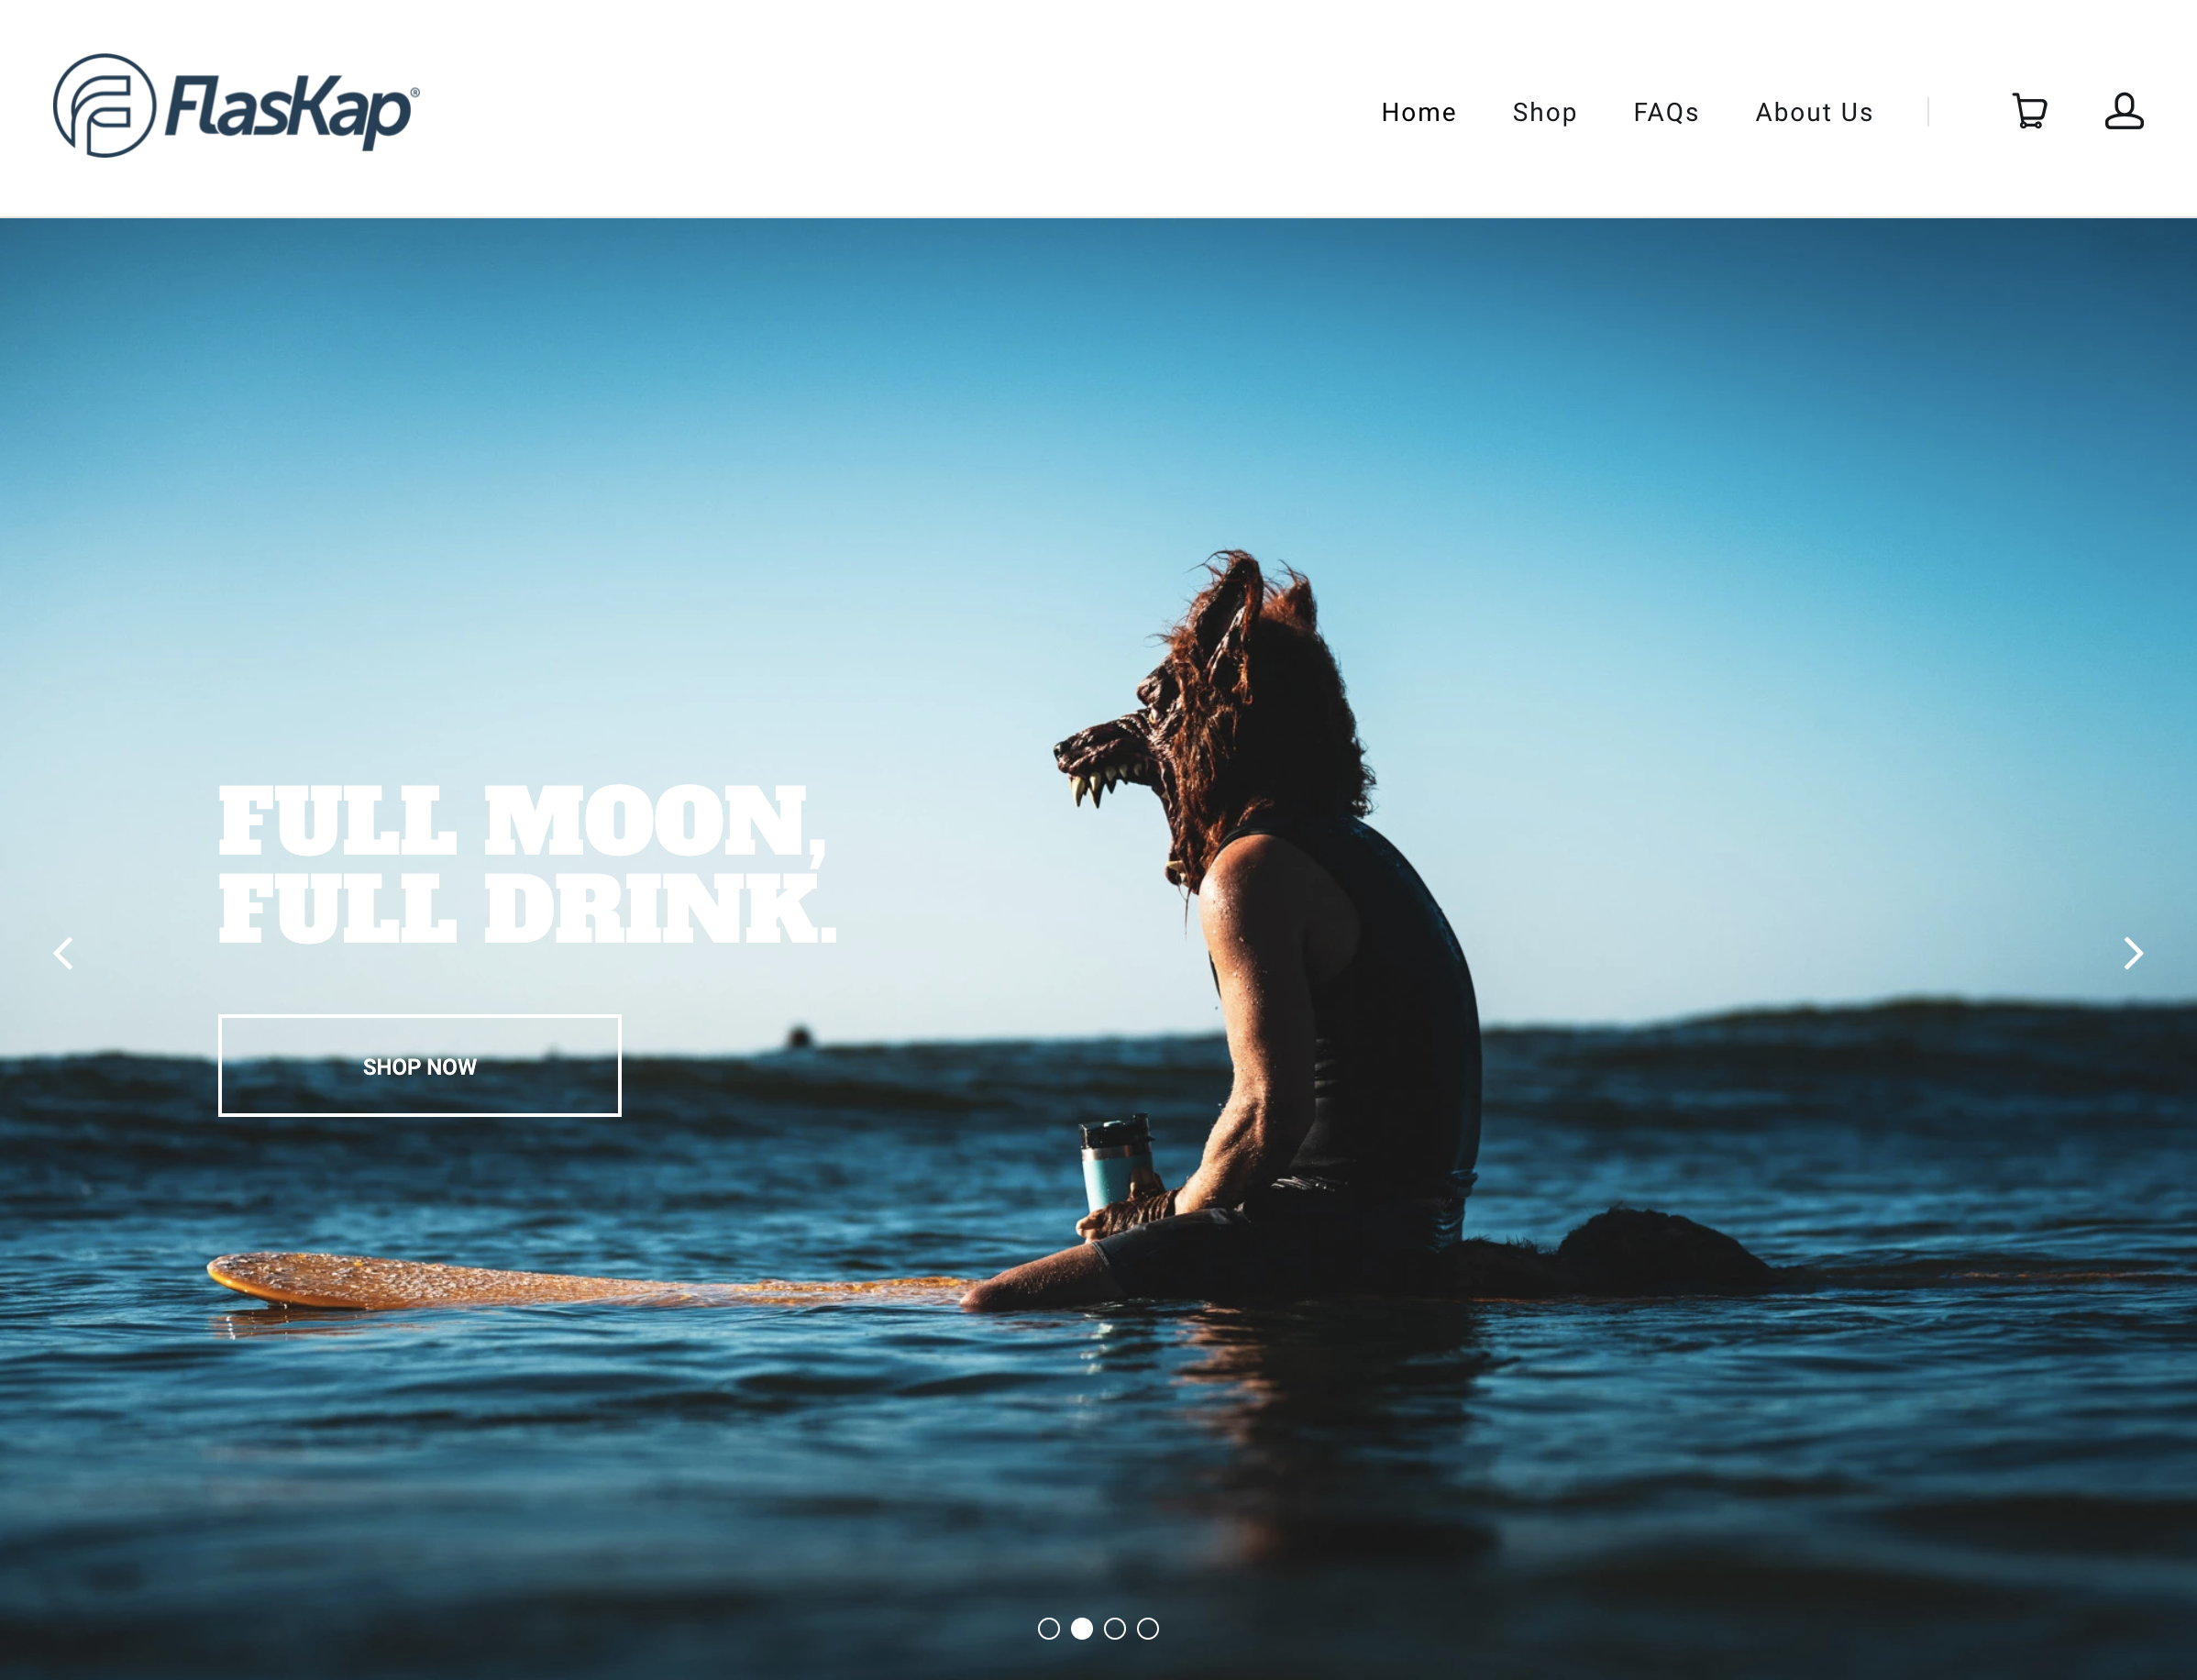 FlasKap Shopify Site